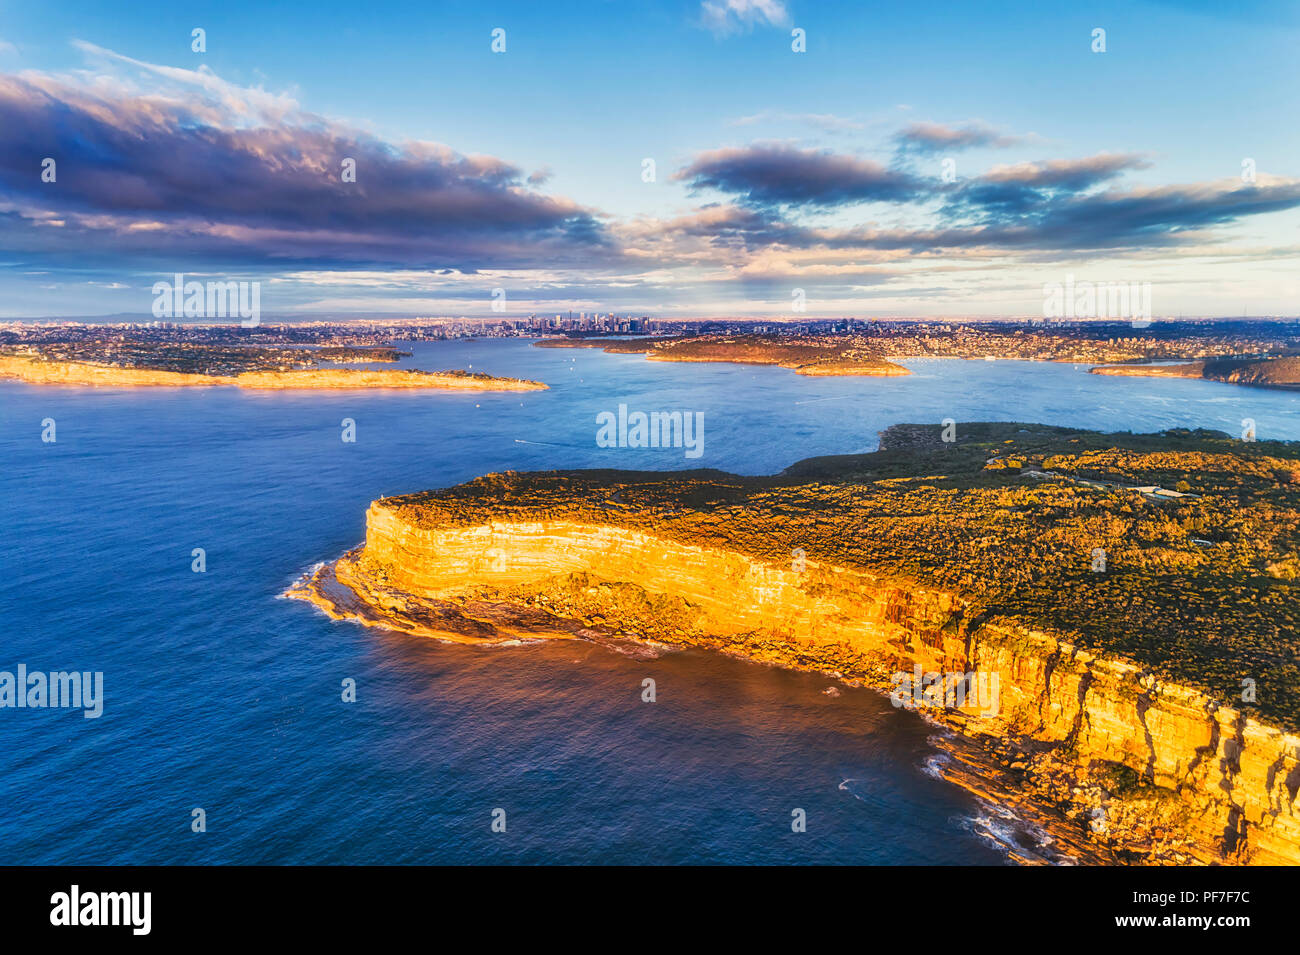 Steep edge of Sydney's north head sandstone cliffs facing Pacific ocean at the entrance to Sydney harbour in aerial elevated view towards city CBD. - Stock Image